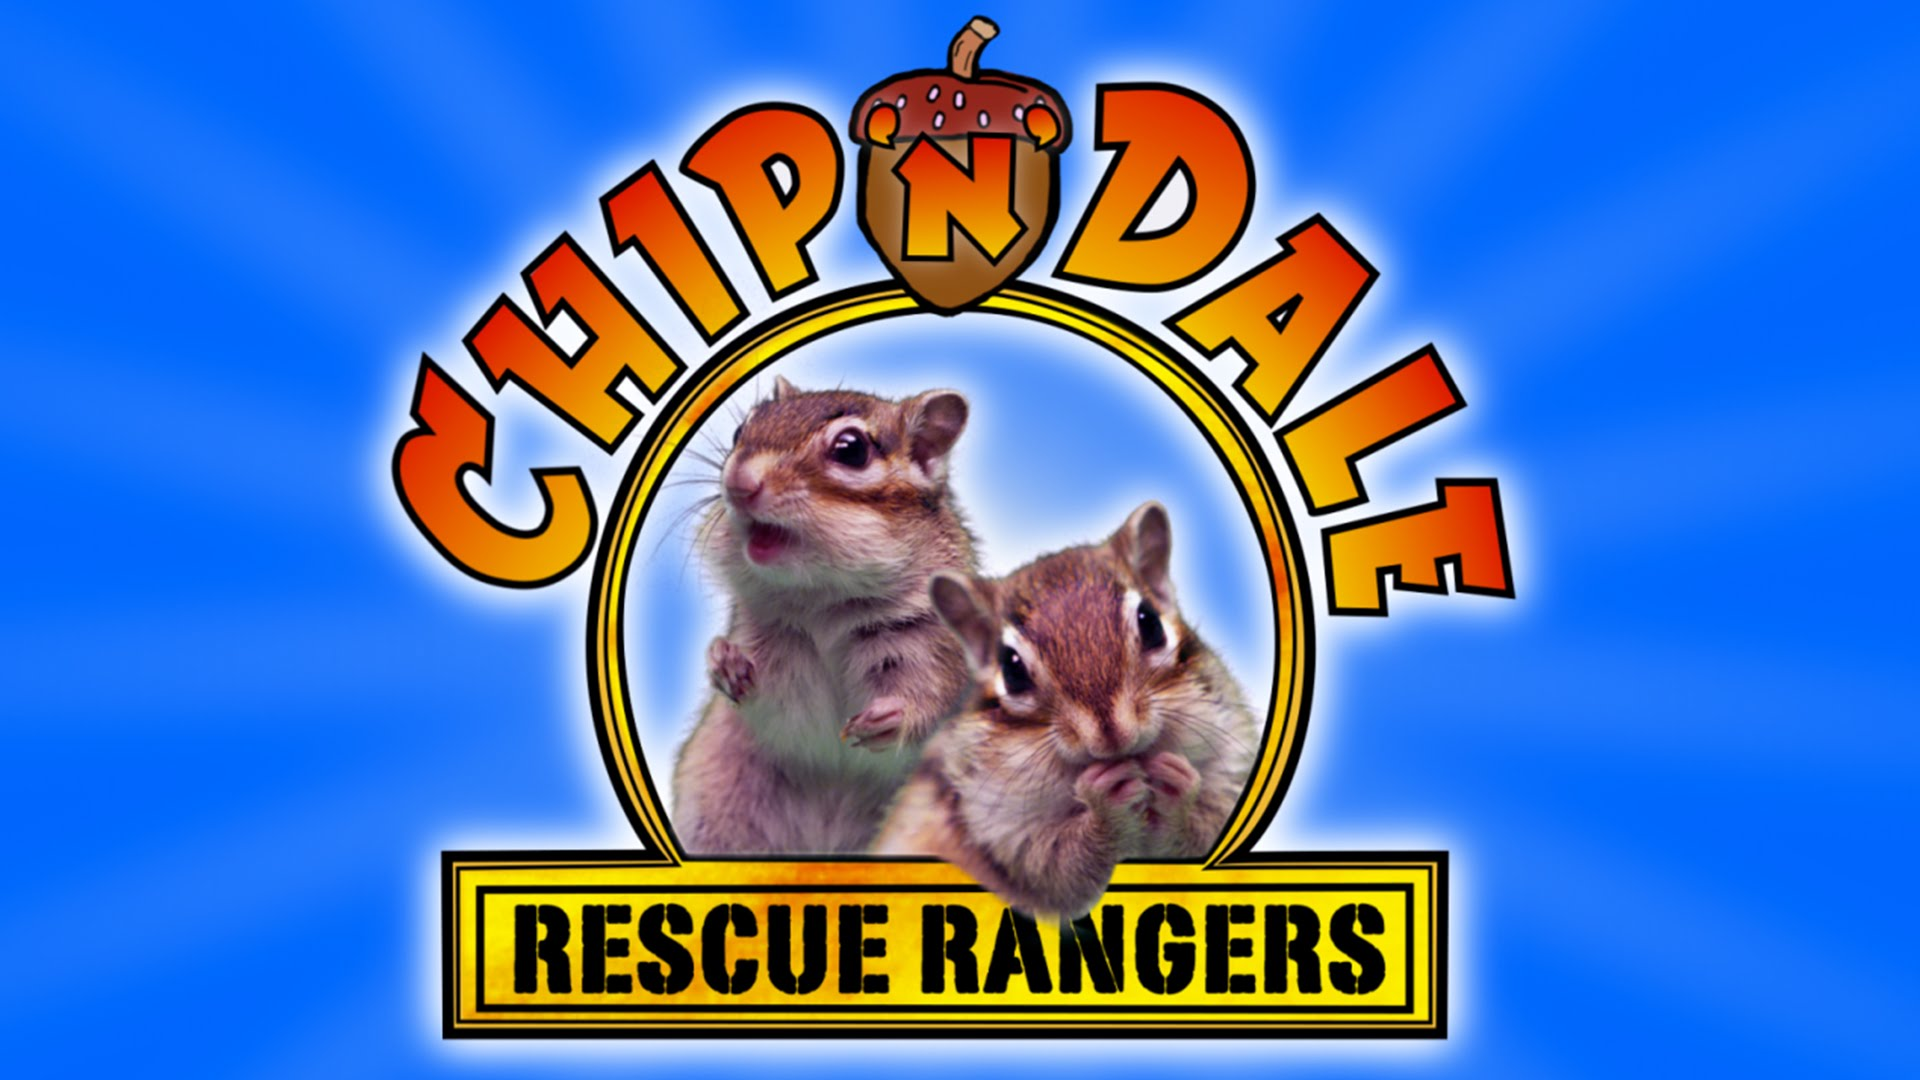 Chip 'n Dale Rescue Rangers Pics, Cartoon Collection